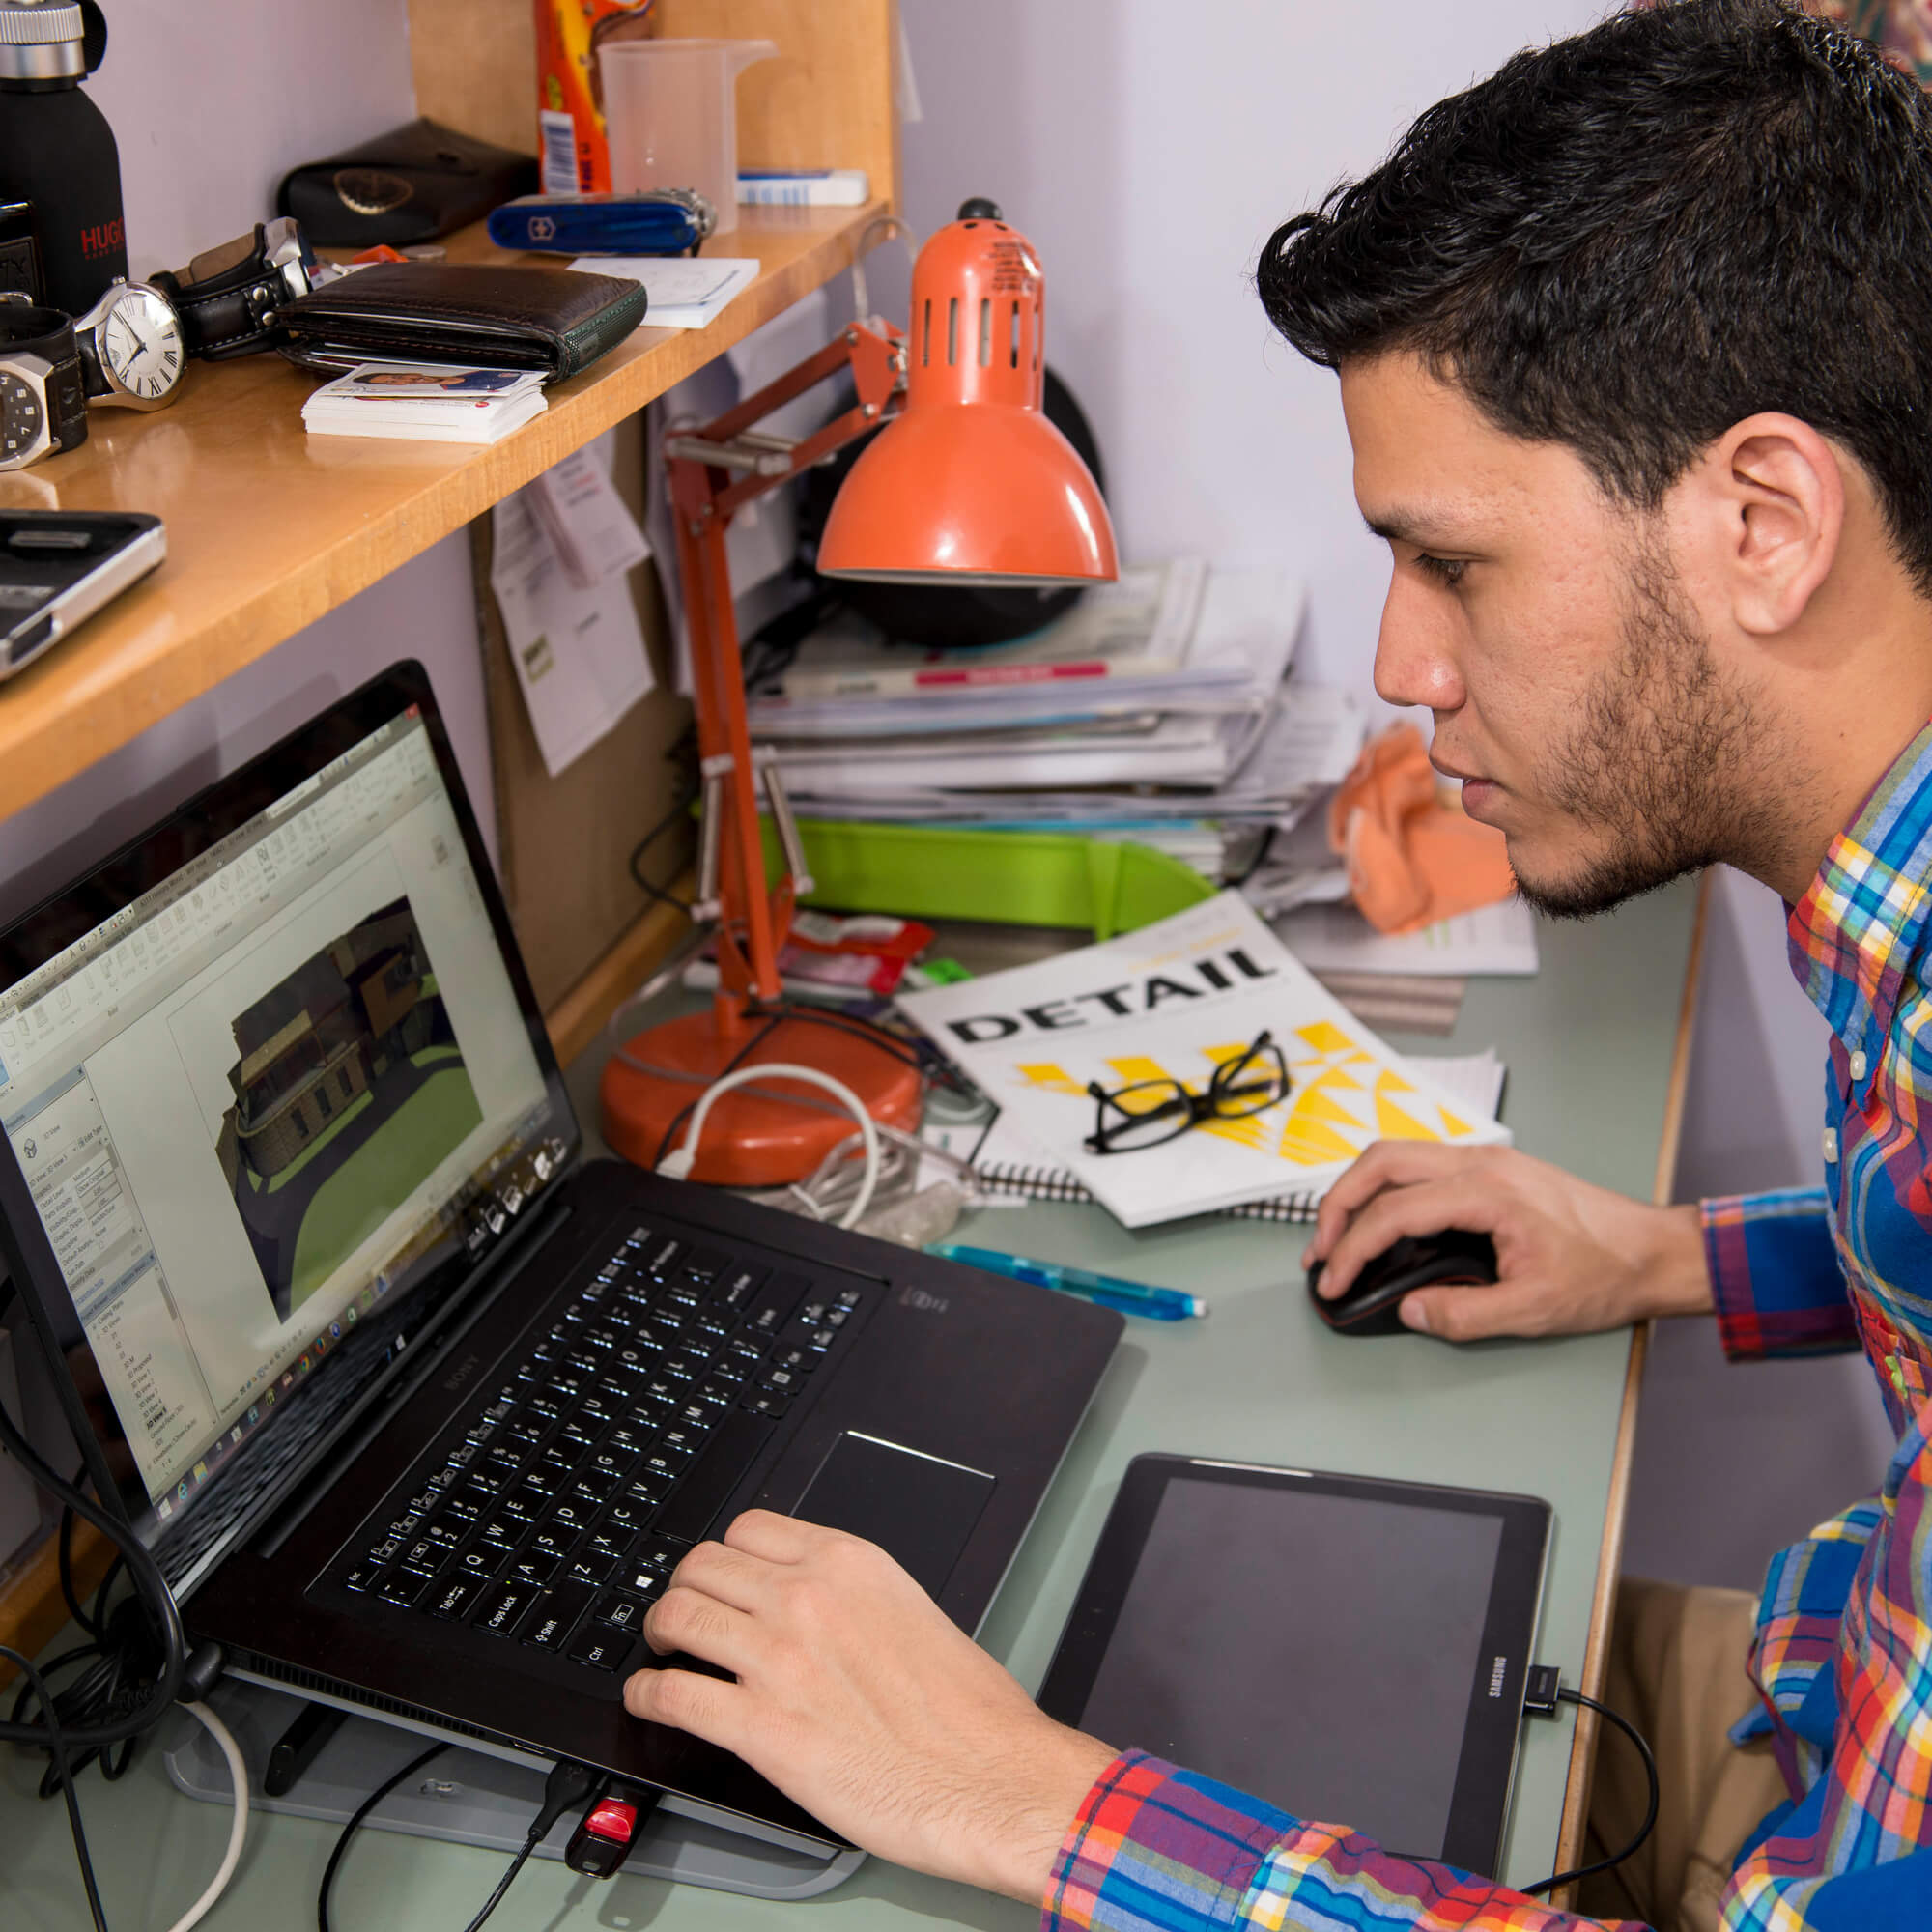 Student working on laptop at desk in halls